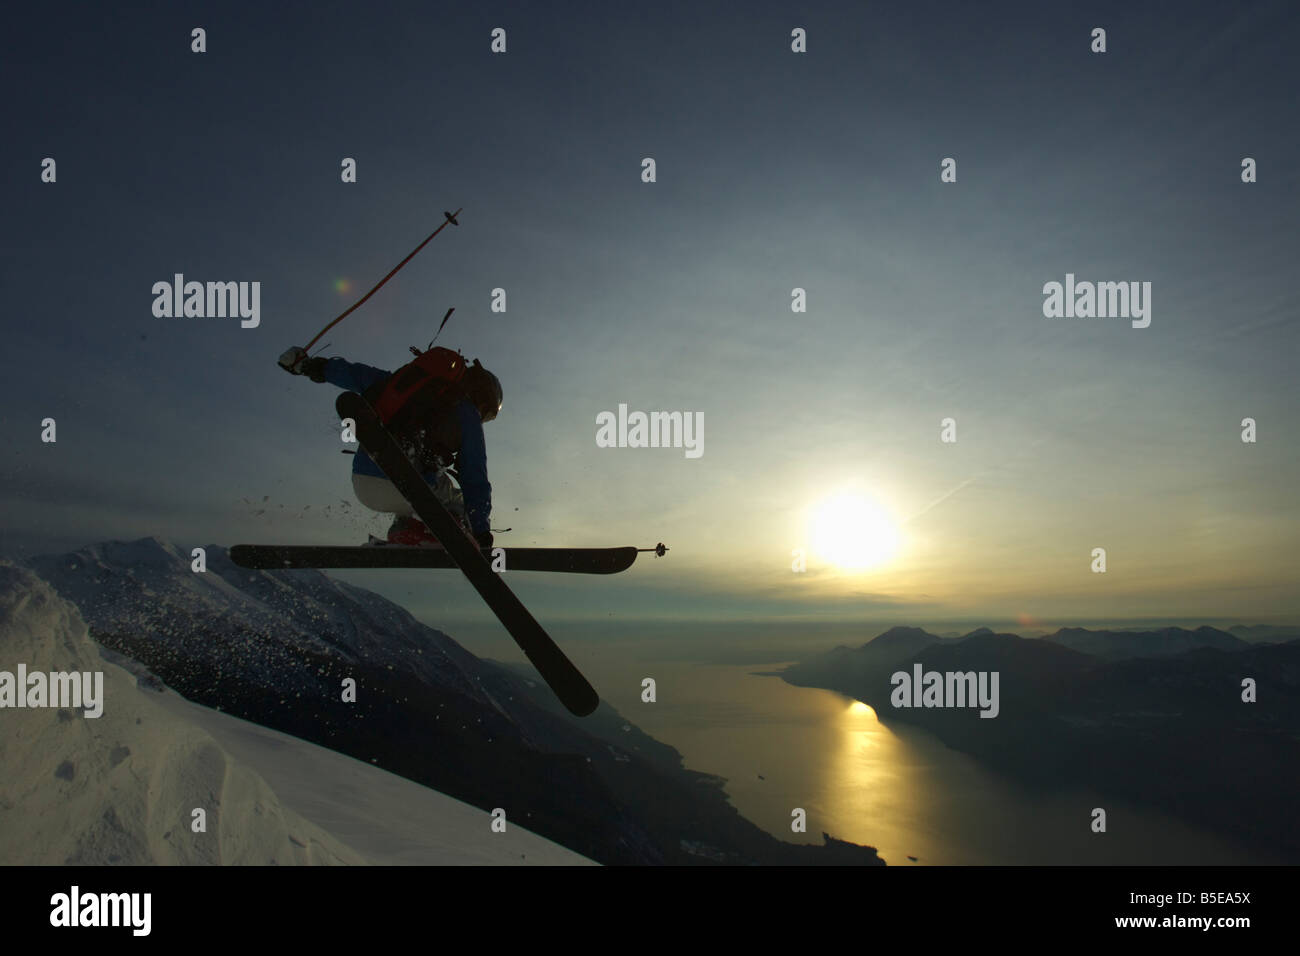 Jumping skier in front of sunset - Stock Image